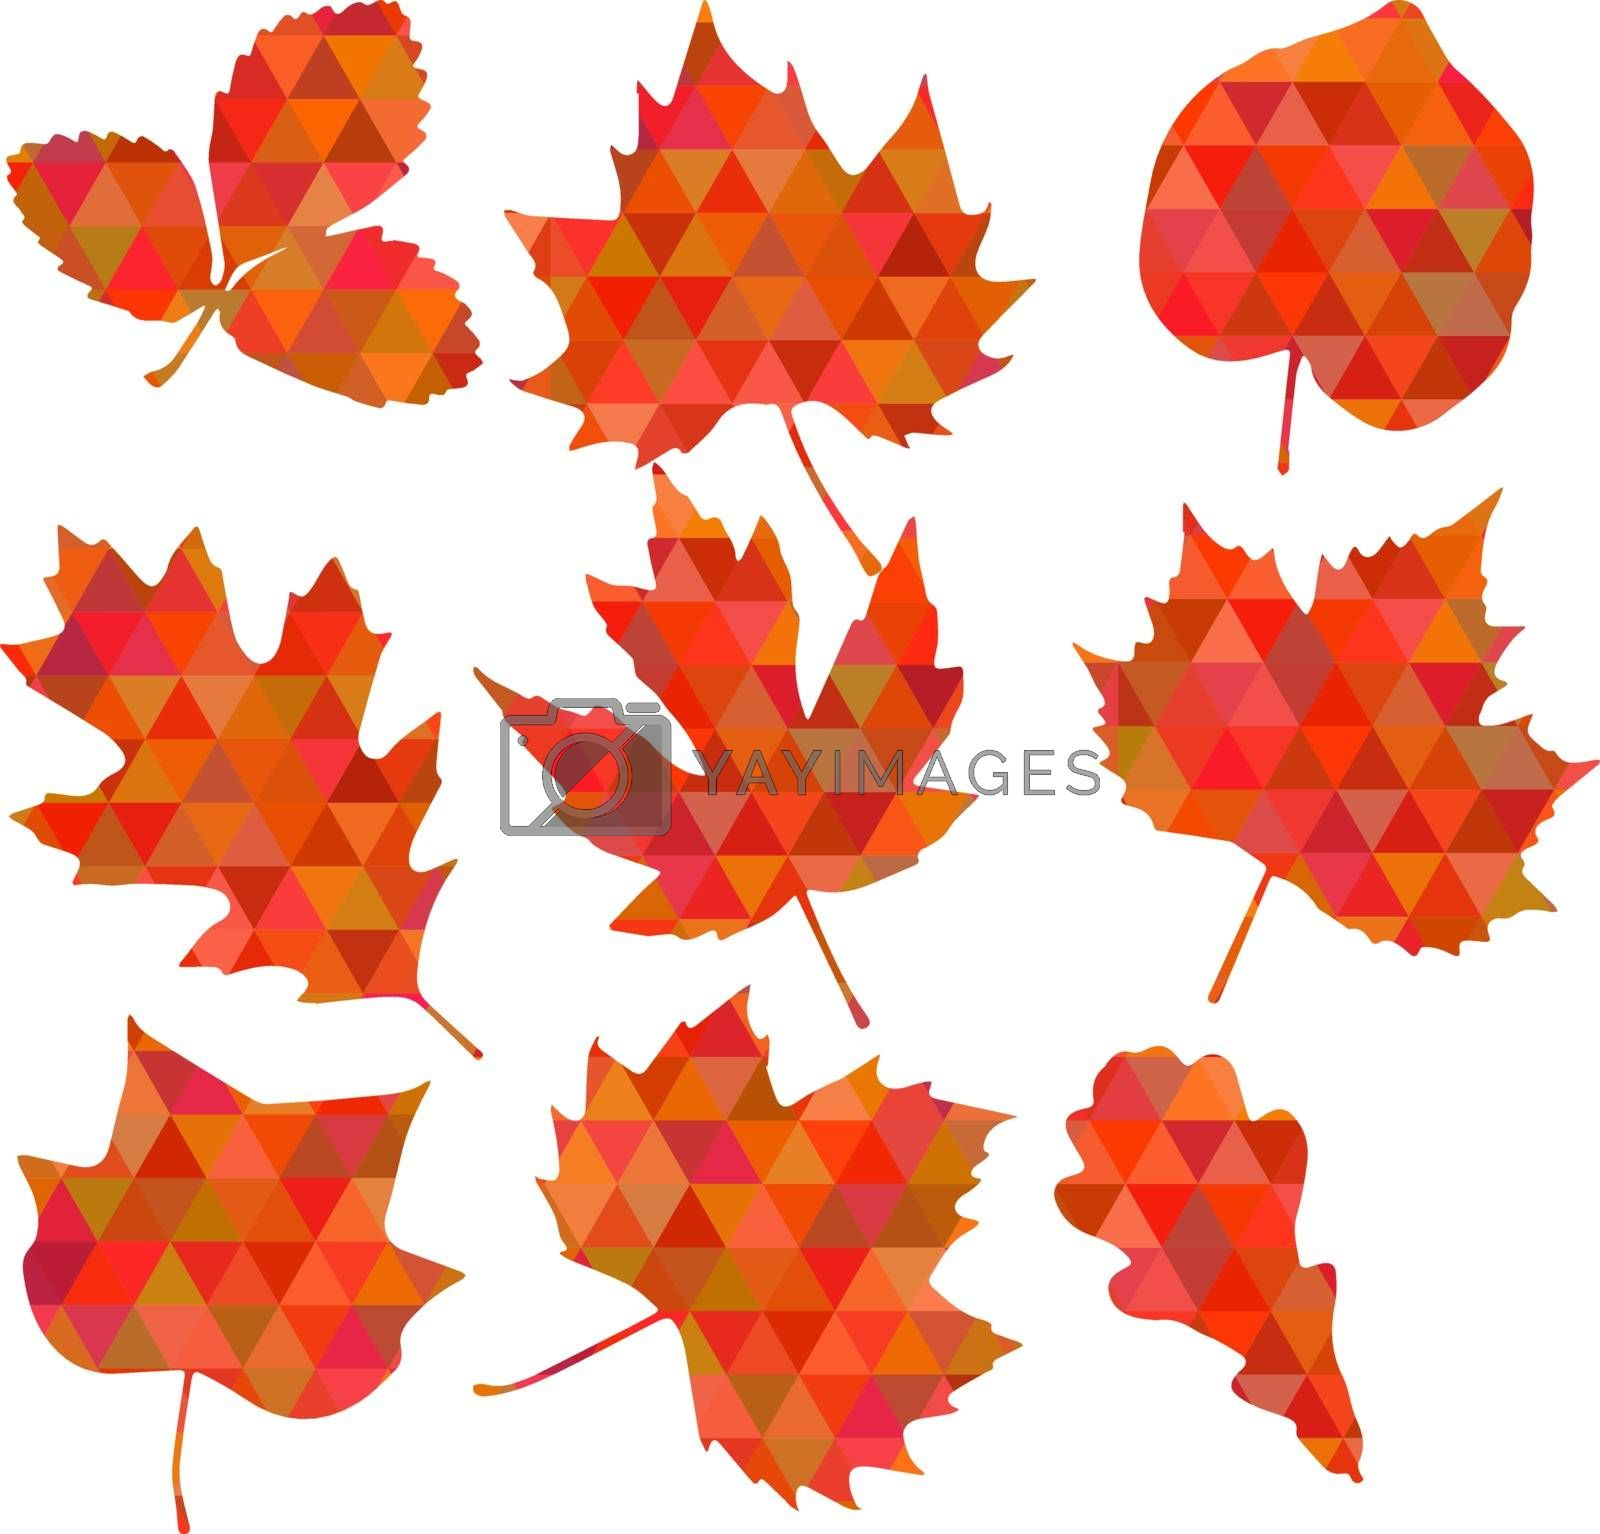 Cute Floral pattern in the small leaf . Ditsy print . Motifs scattered random. Vector texture. Elegant template for fashion prints.